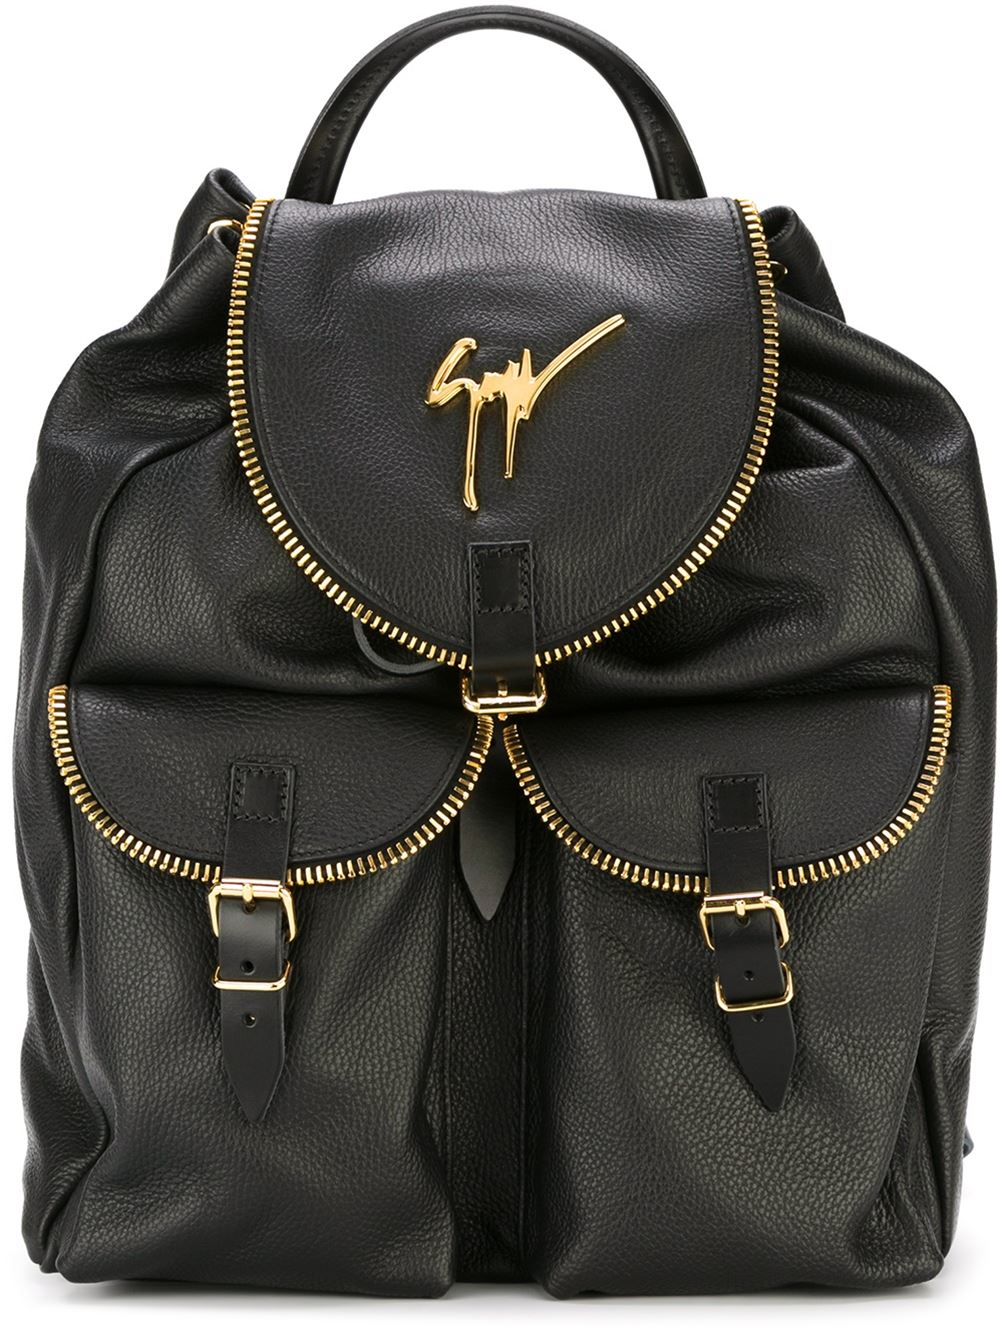 501069e53ae25 Giuseppe Zanotti 'regiment' Backpack in Black for Men - Lyst